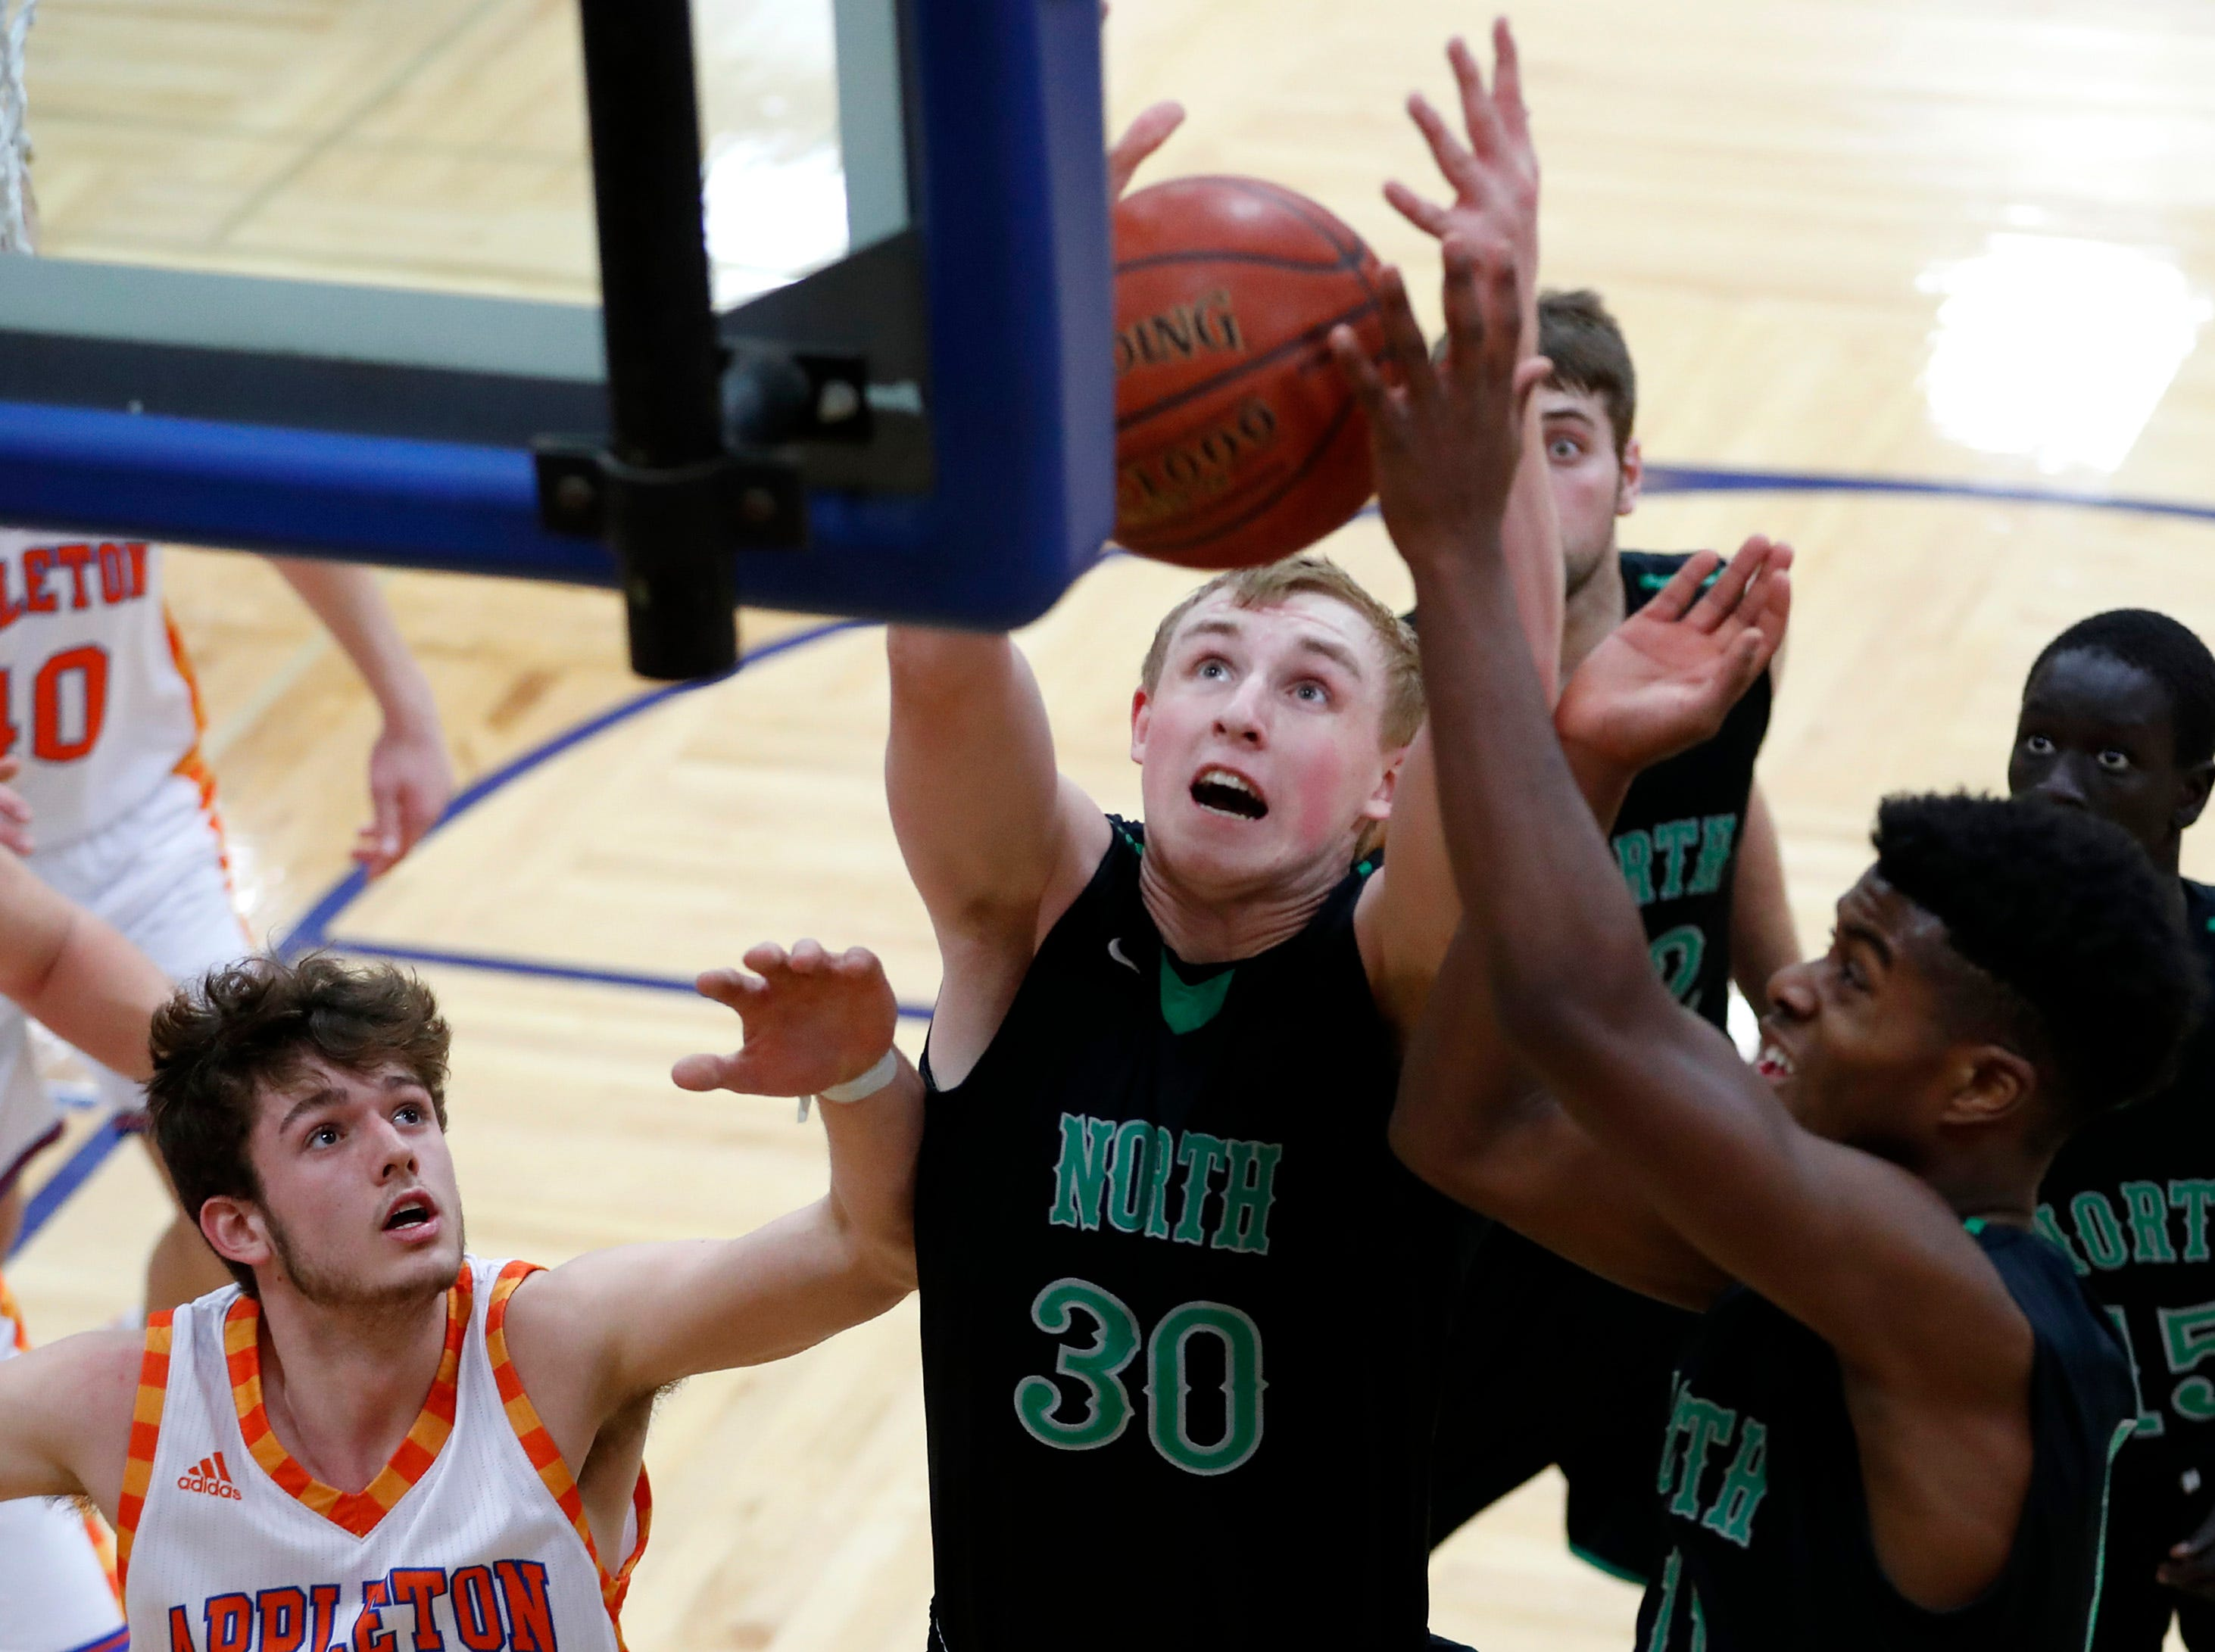 Oshkosh North High SchoolÕs Matthew Berger jumps for a rebound during their game against Appleton West High School Tuesday, Jan. 15, 2019, at Appleton West High School in Appleton, Wis. Appleton West High School defeated Oshkosh North High School 72-63.Danny Damiani/USA TODAY NETWORK-Wisconsin